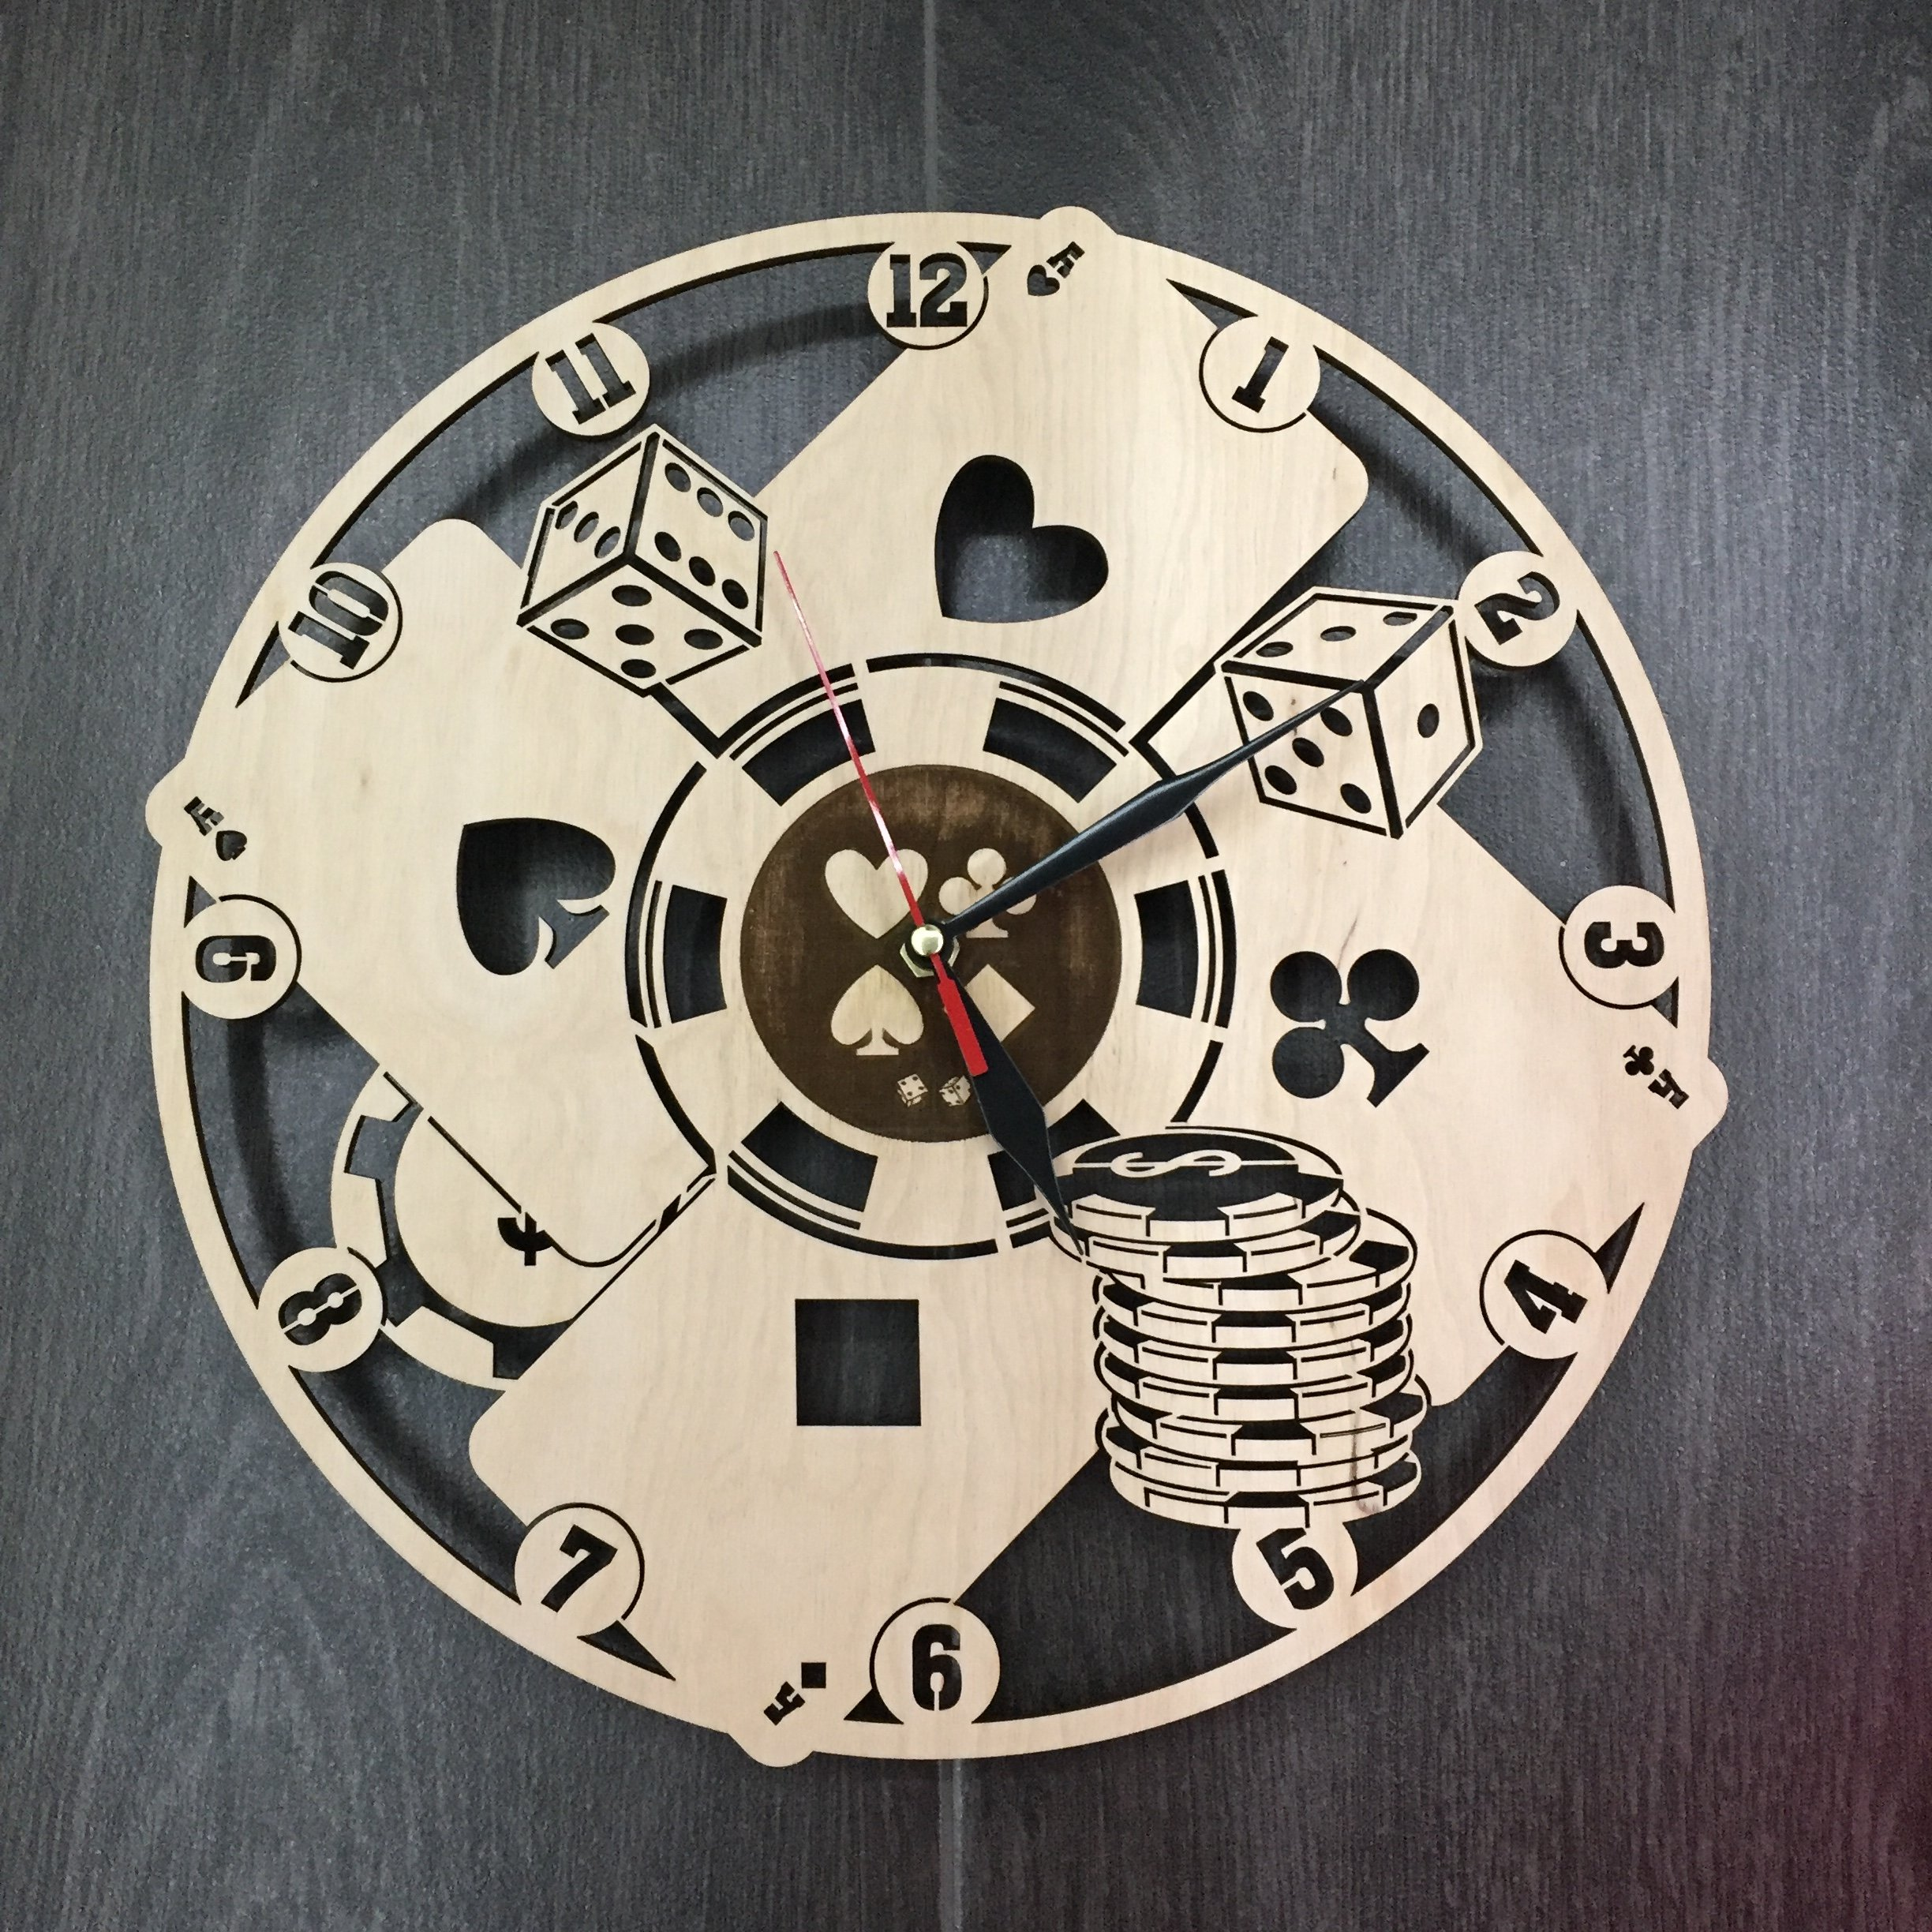 Poker Wall Clock Made of WOOD - Perfect and Beautifully Cut - Decorate your Home with MODERN ART - UNIQUE GIFT for Him and Her - Size 12 Inches